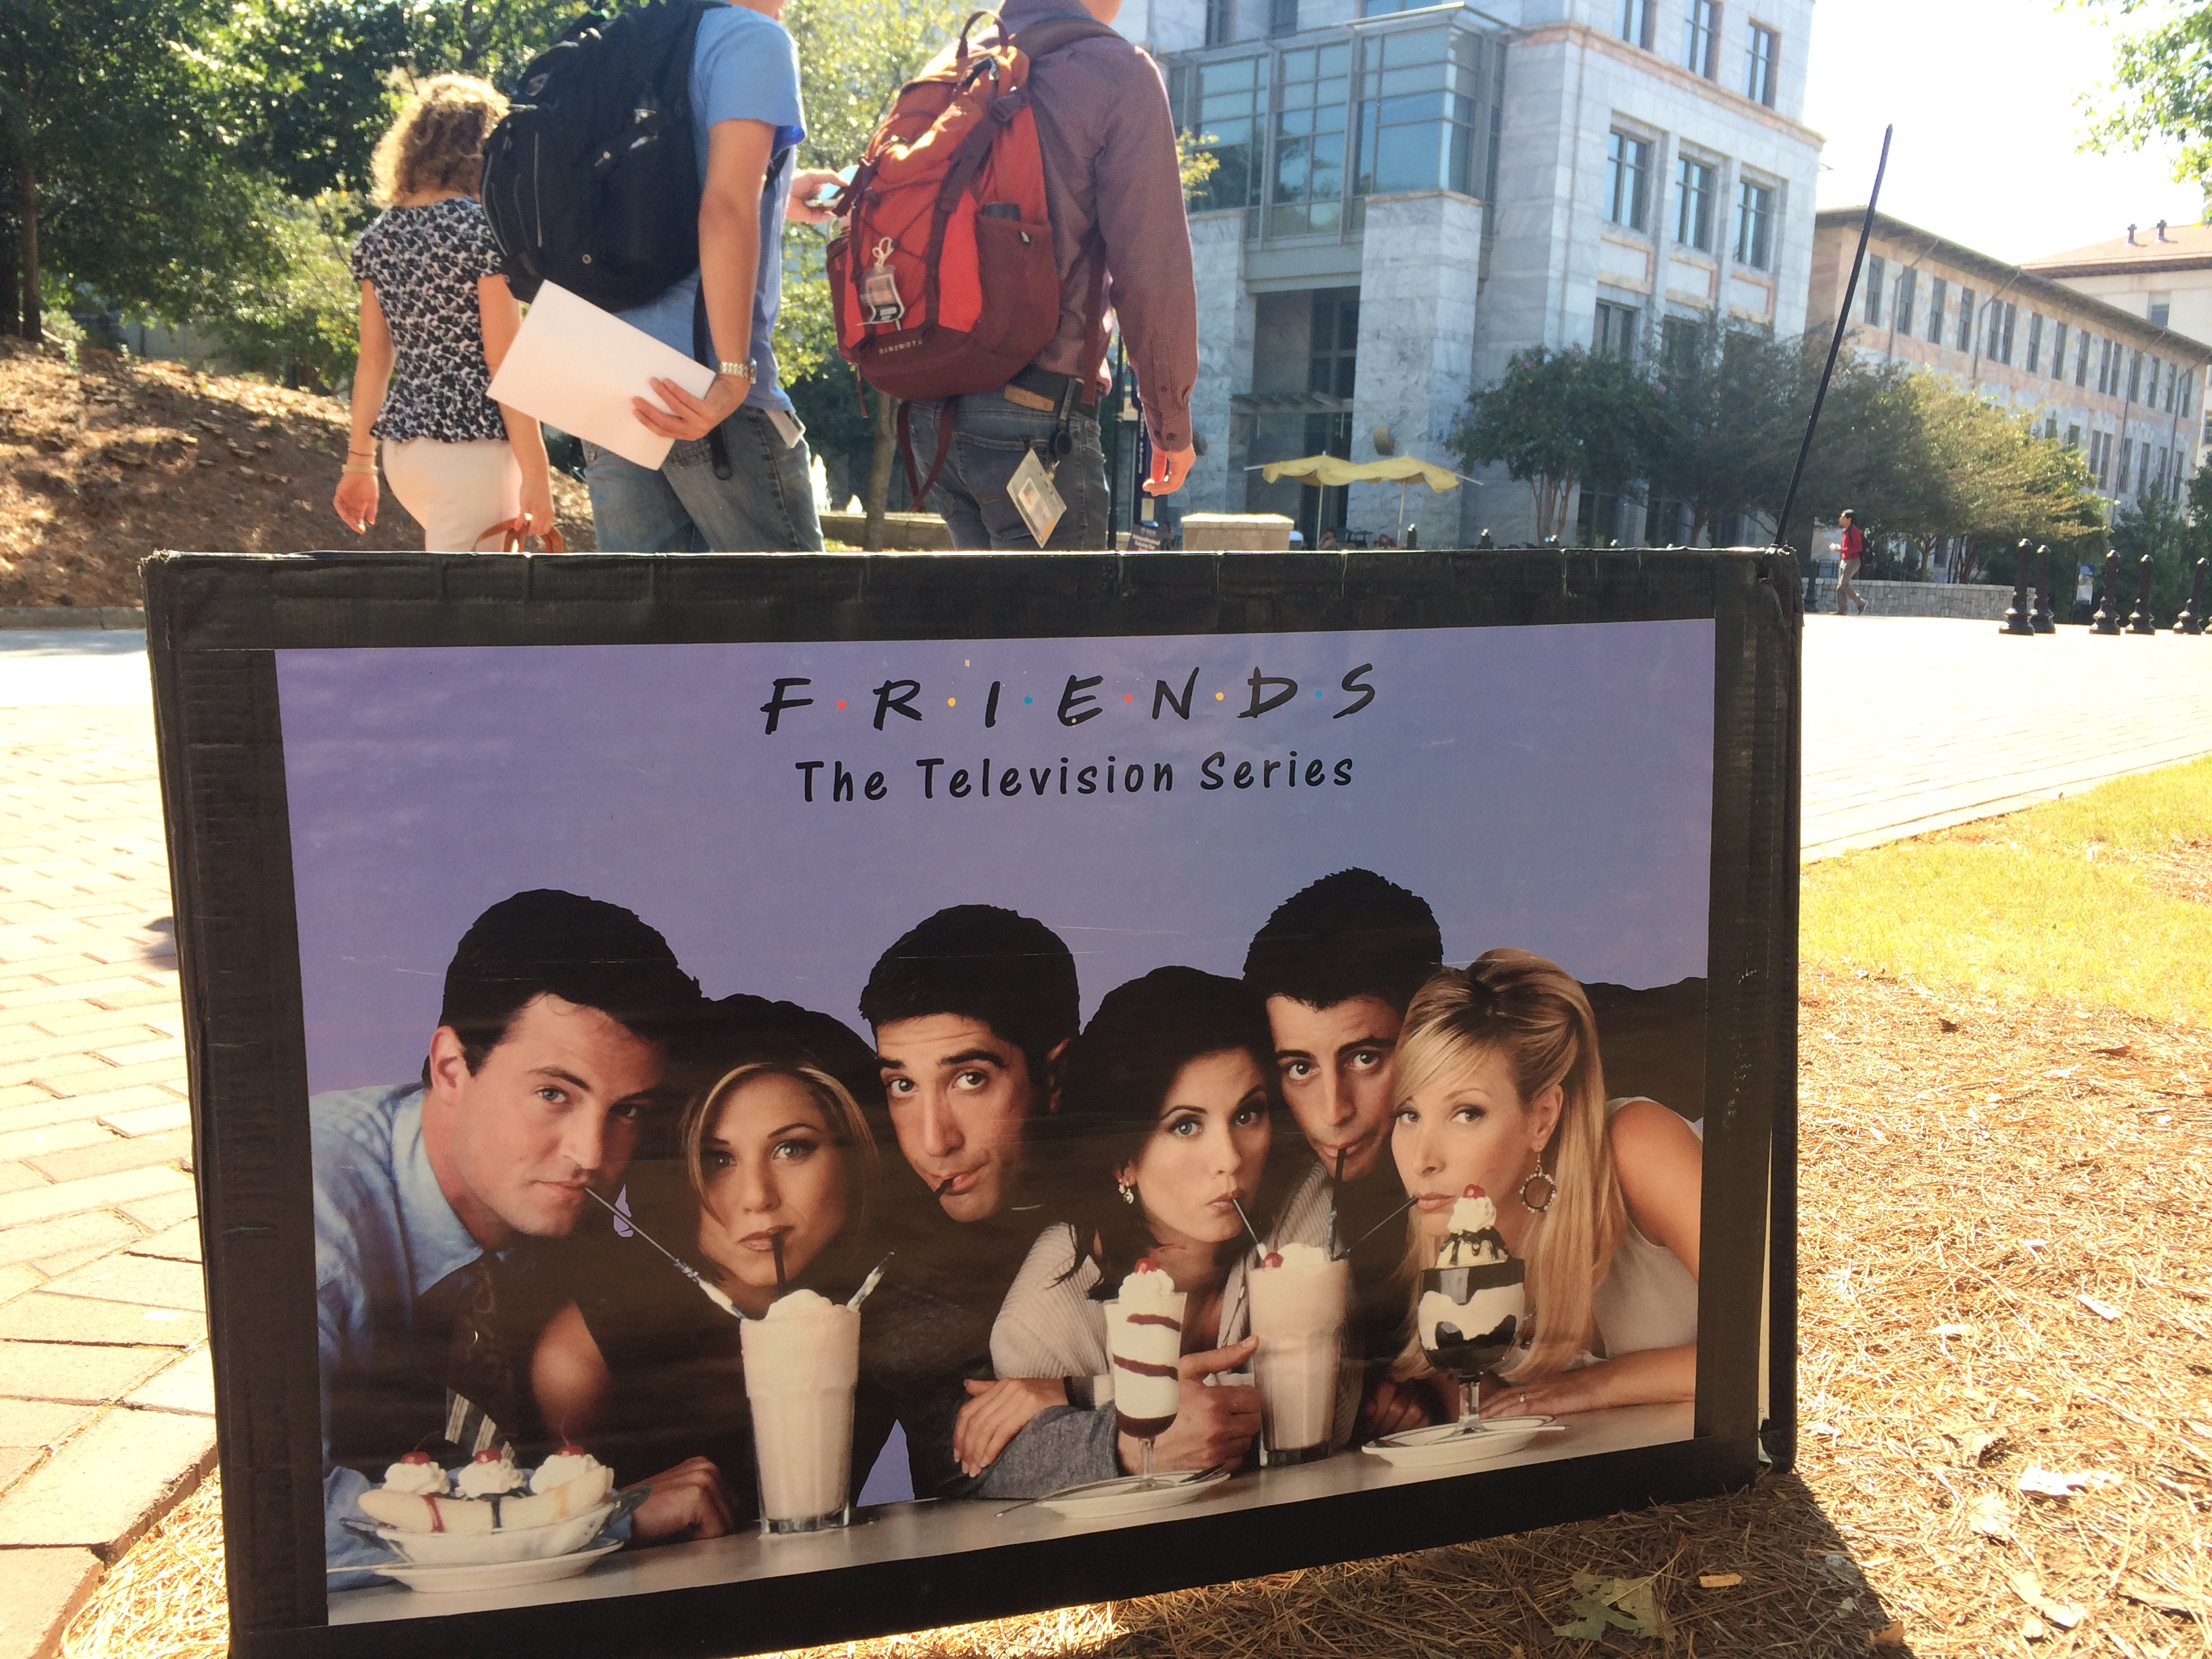 """Friends: The Television Show"" milkshake poster circa 1994"